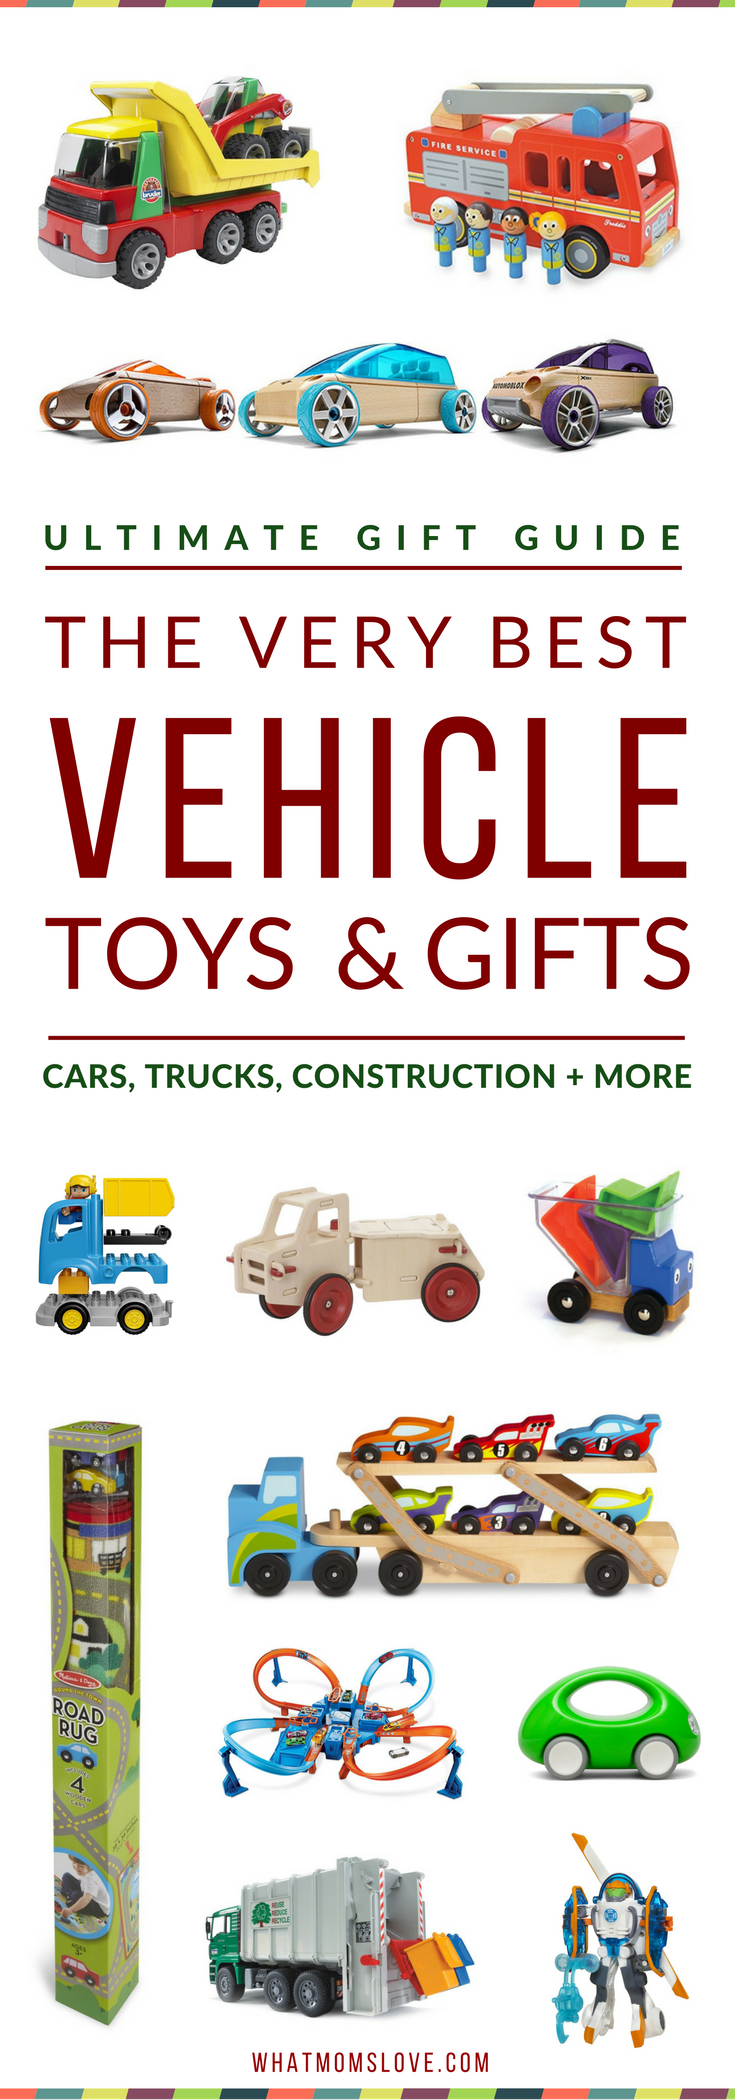 Gift Ideas For Vehicle Lovers | Best Toys For Car, Truck, Construction, Machines and Things That Go For Kids | Best Gifts For Boys | All recommendations have been kid-tested, and include detailed descriptions with age range and price | visit whatmomslove.com for all our popular kid's gift guides!